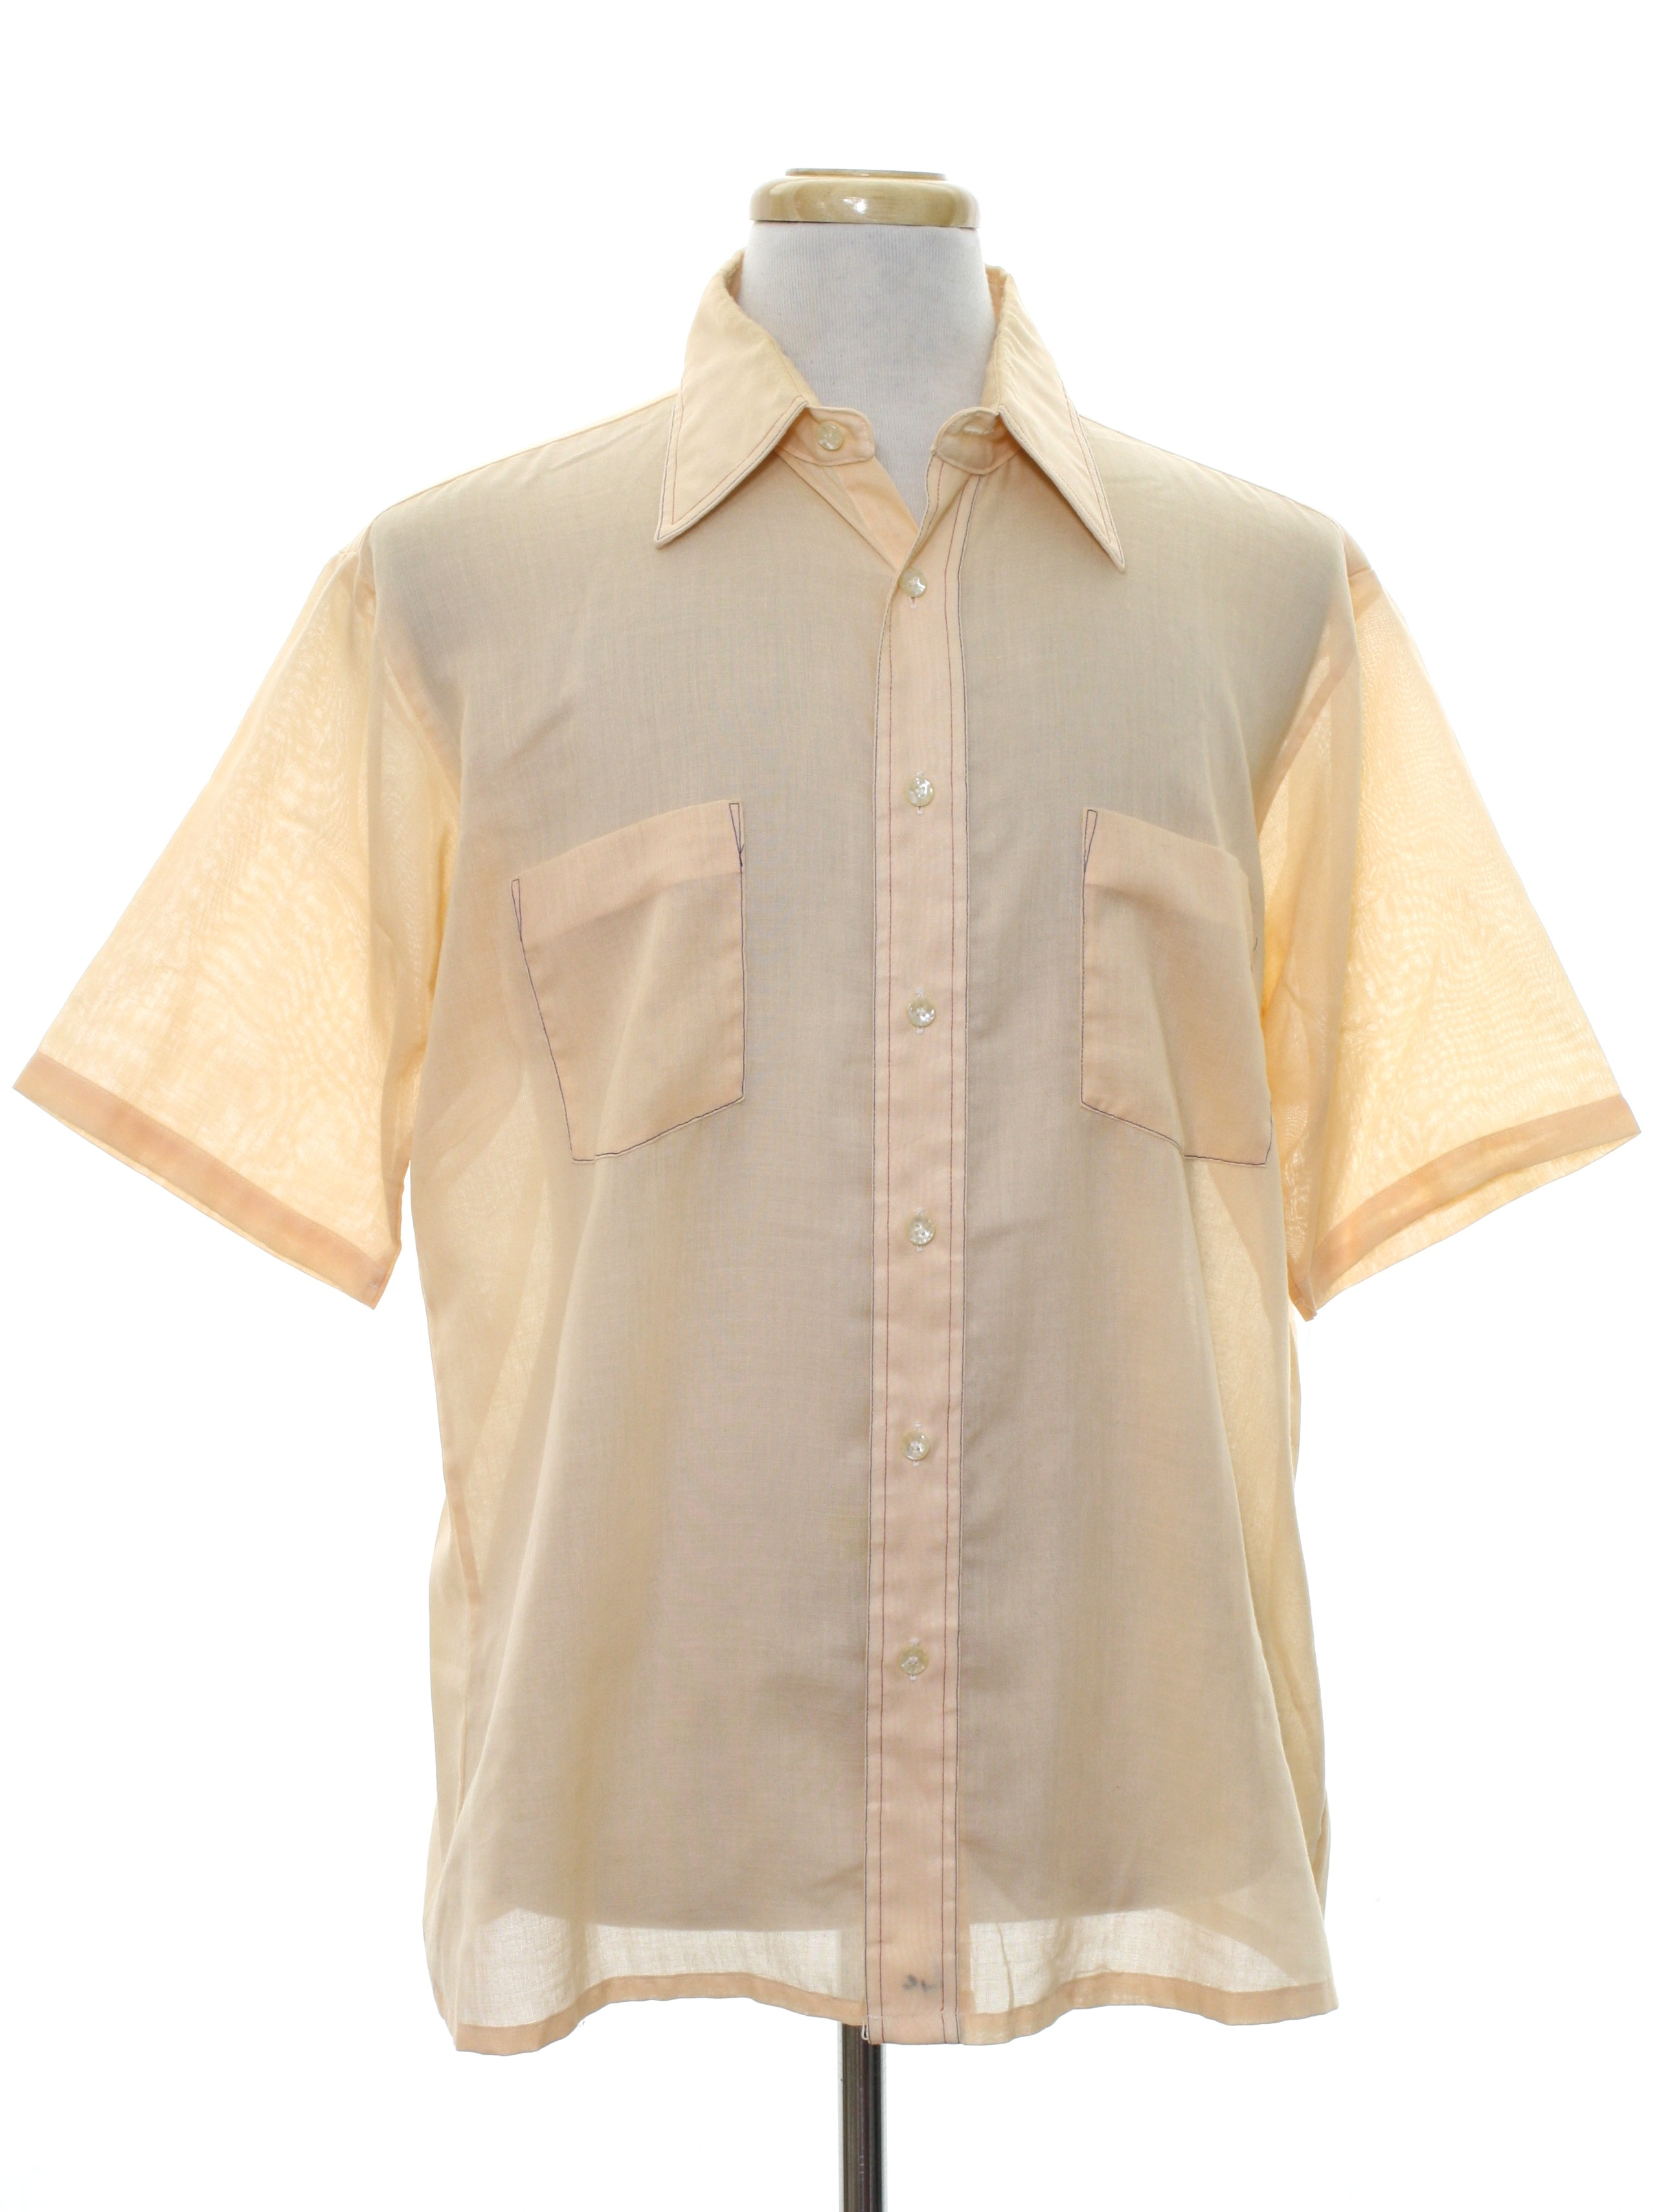 Retro 60s shirt manhattan 60s style made in 80s for Button up collared sport shirts